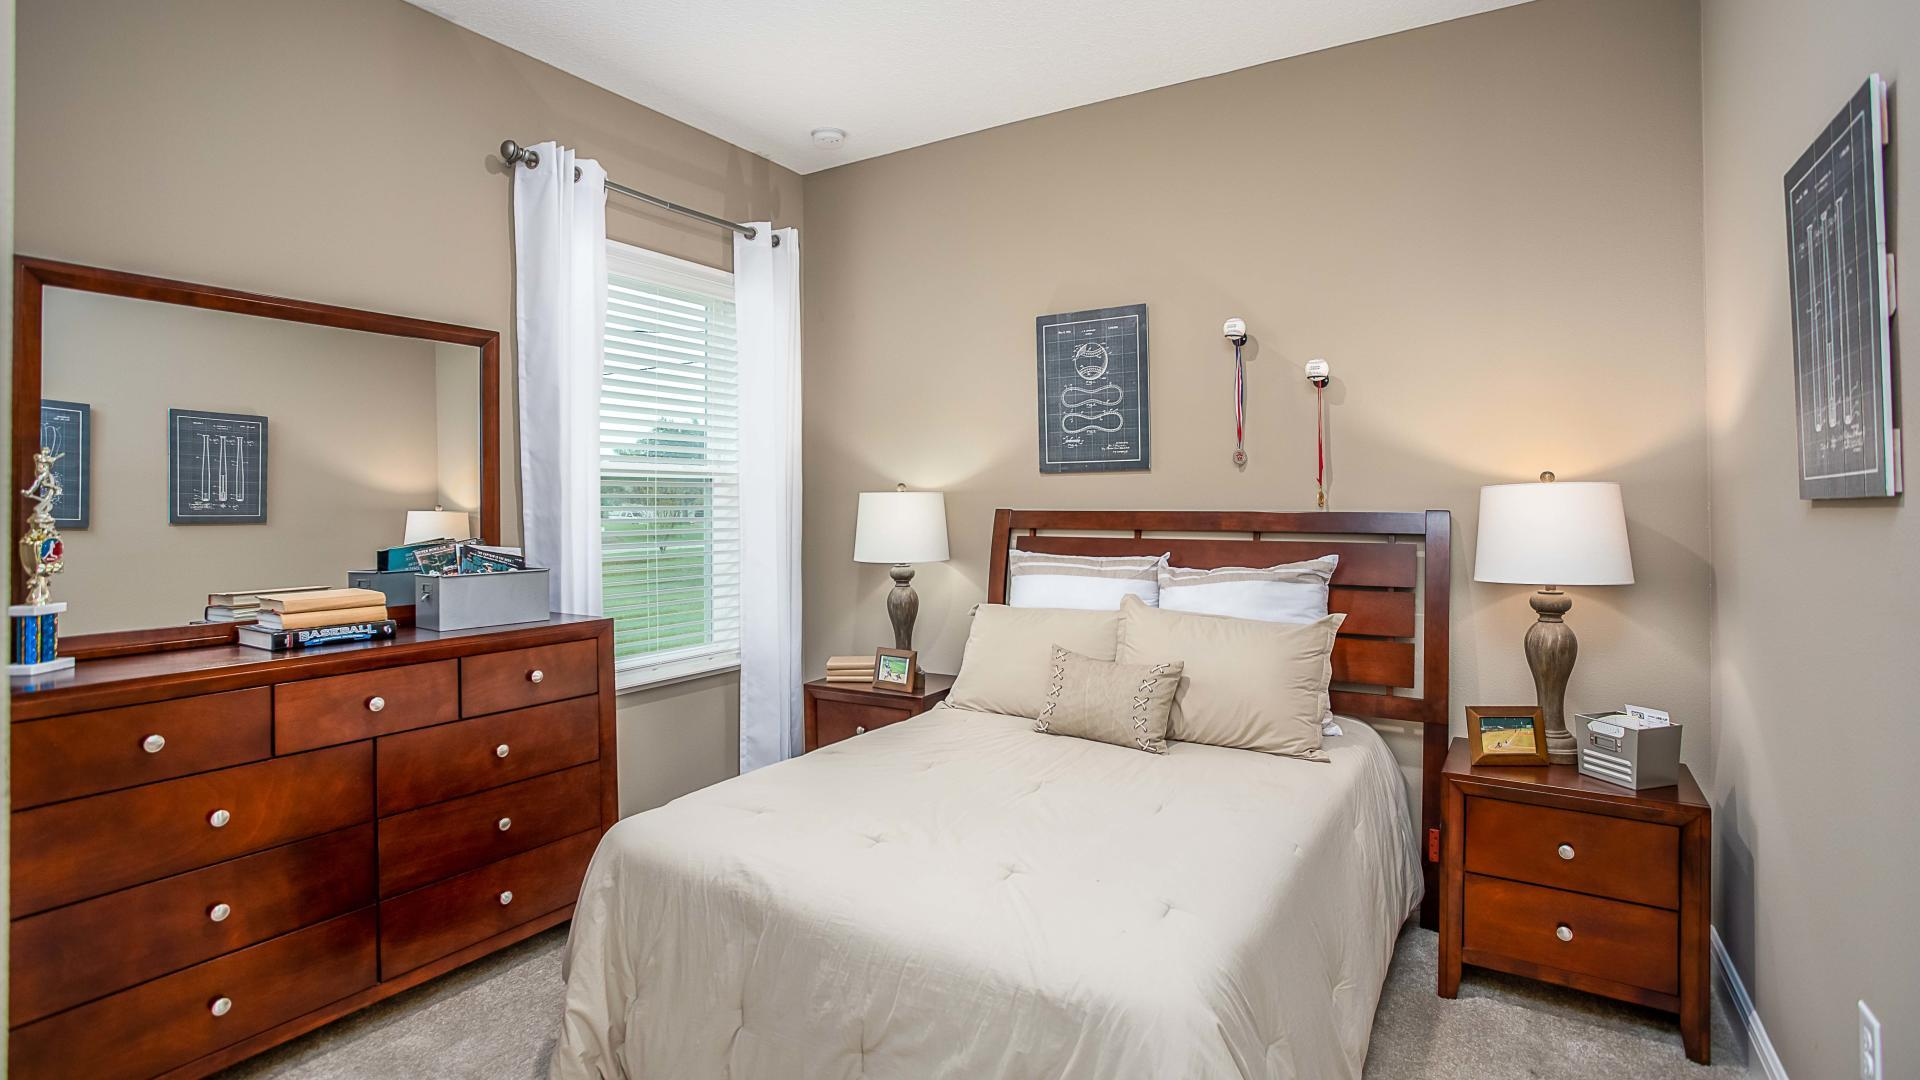 Bedroom featured in the Wilmington By Maronda Homes in Gainesville, FL